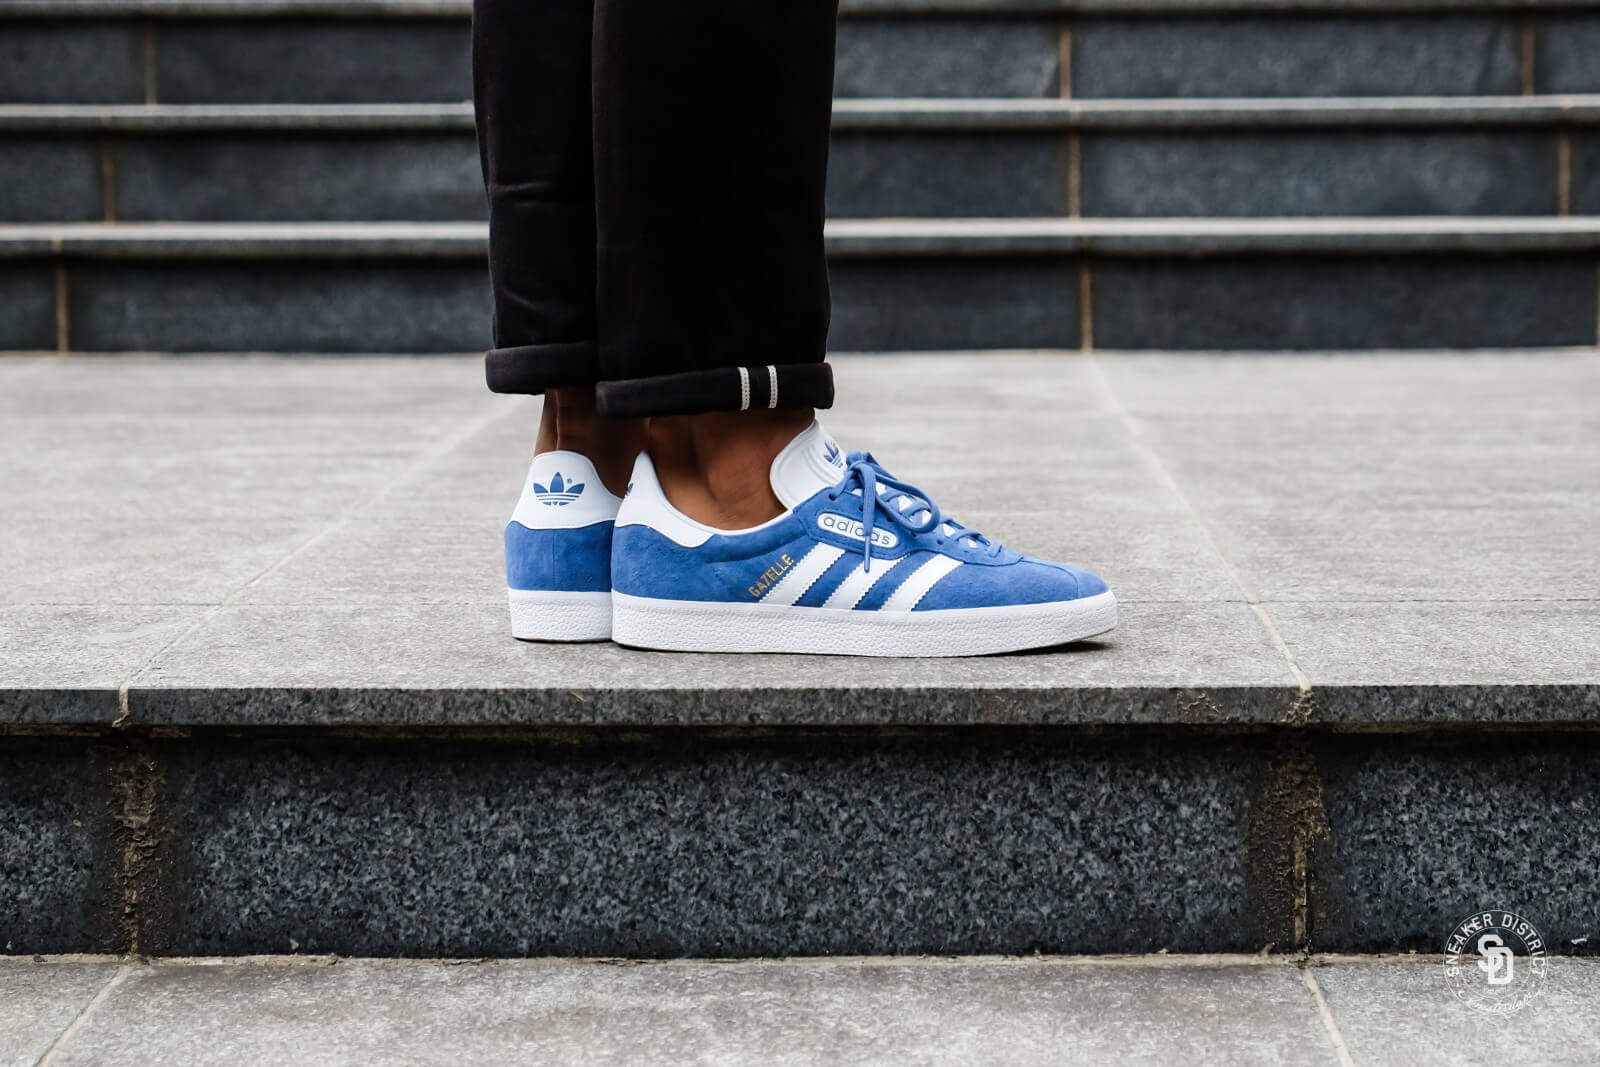 2adidas gazelle super essential